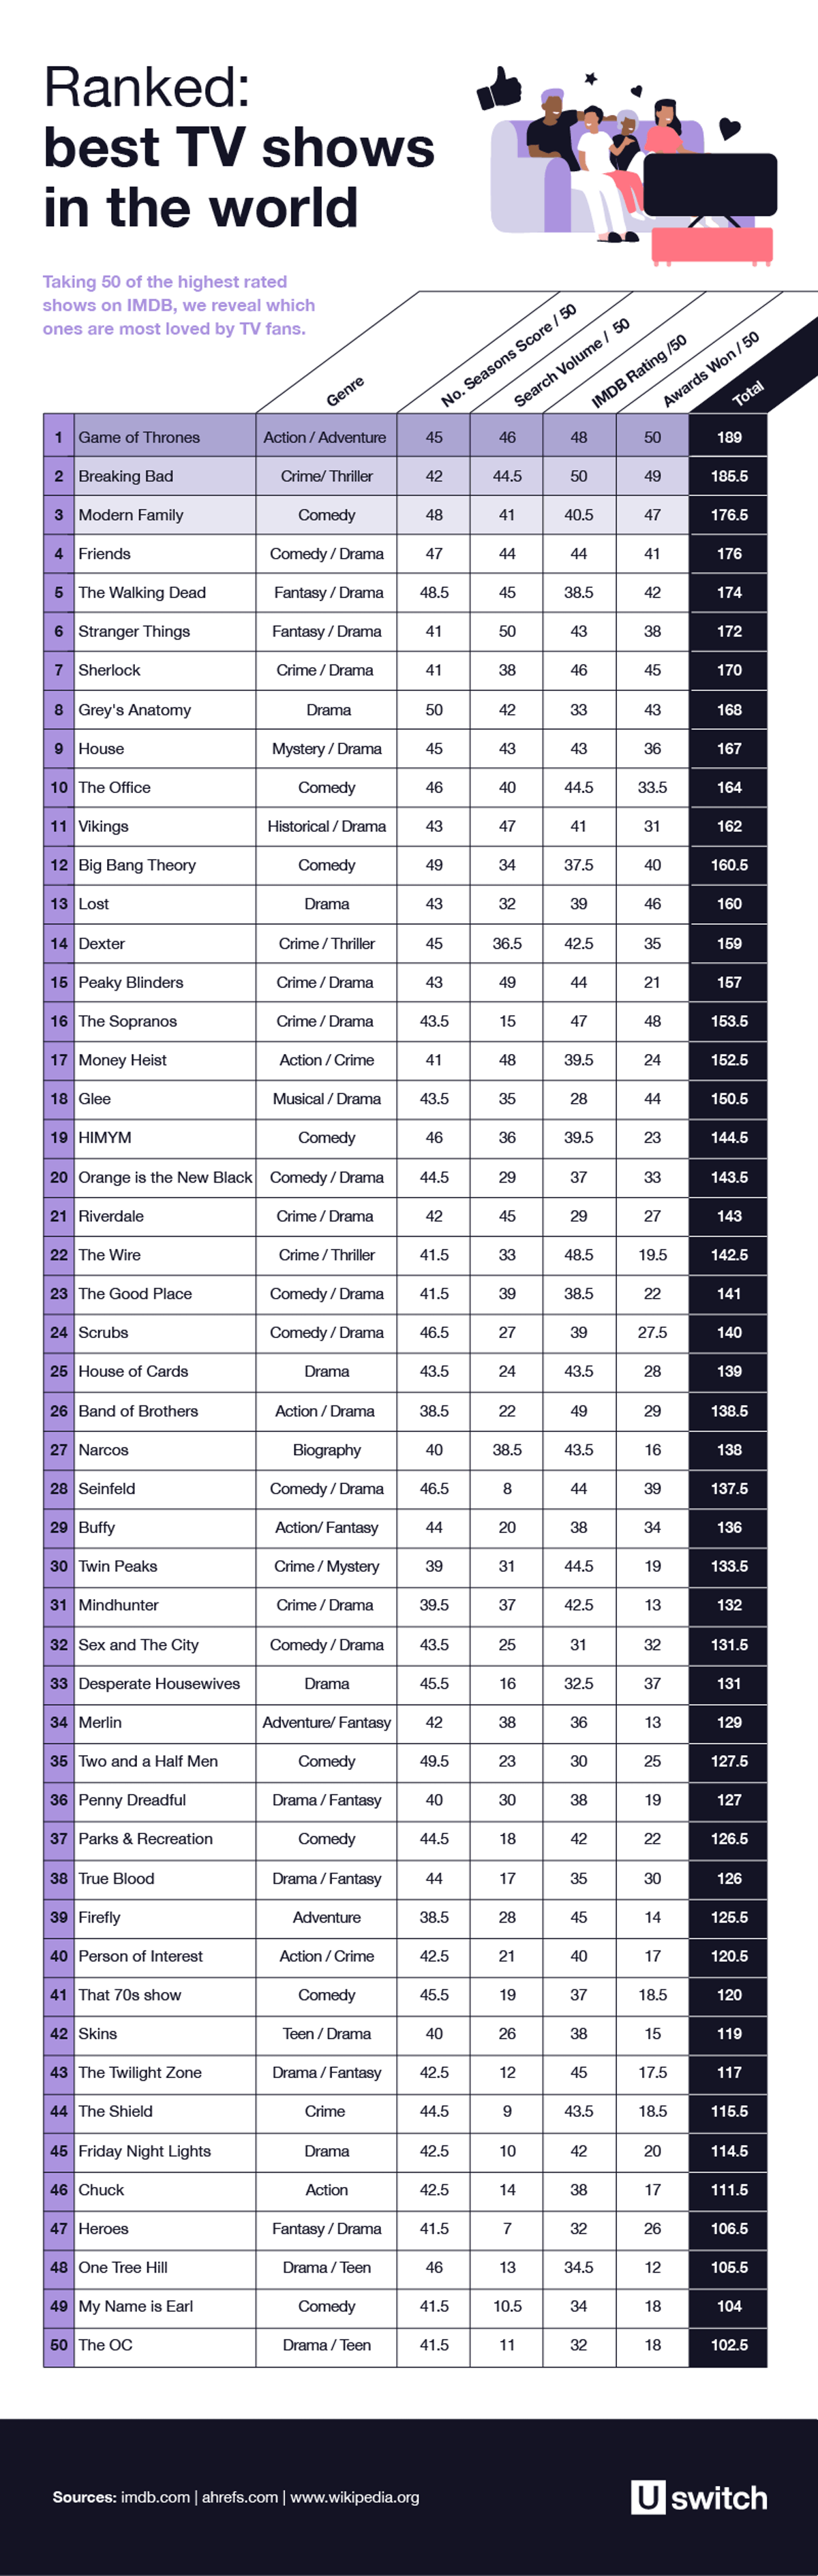 Index shows the best TV shows in the world